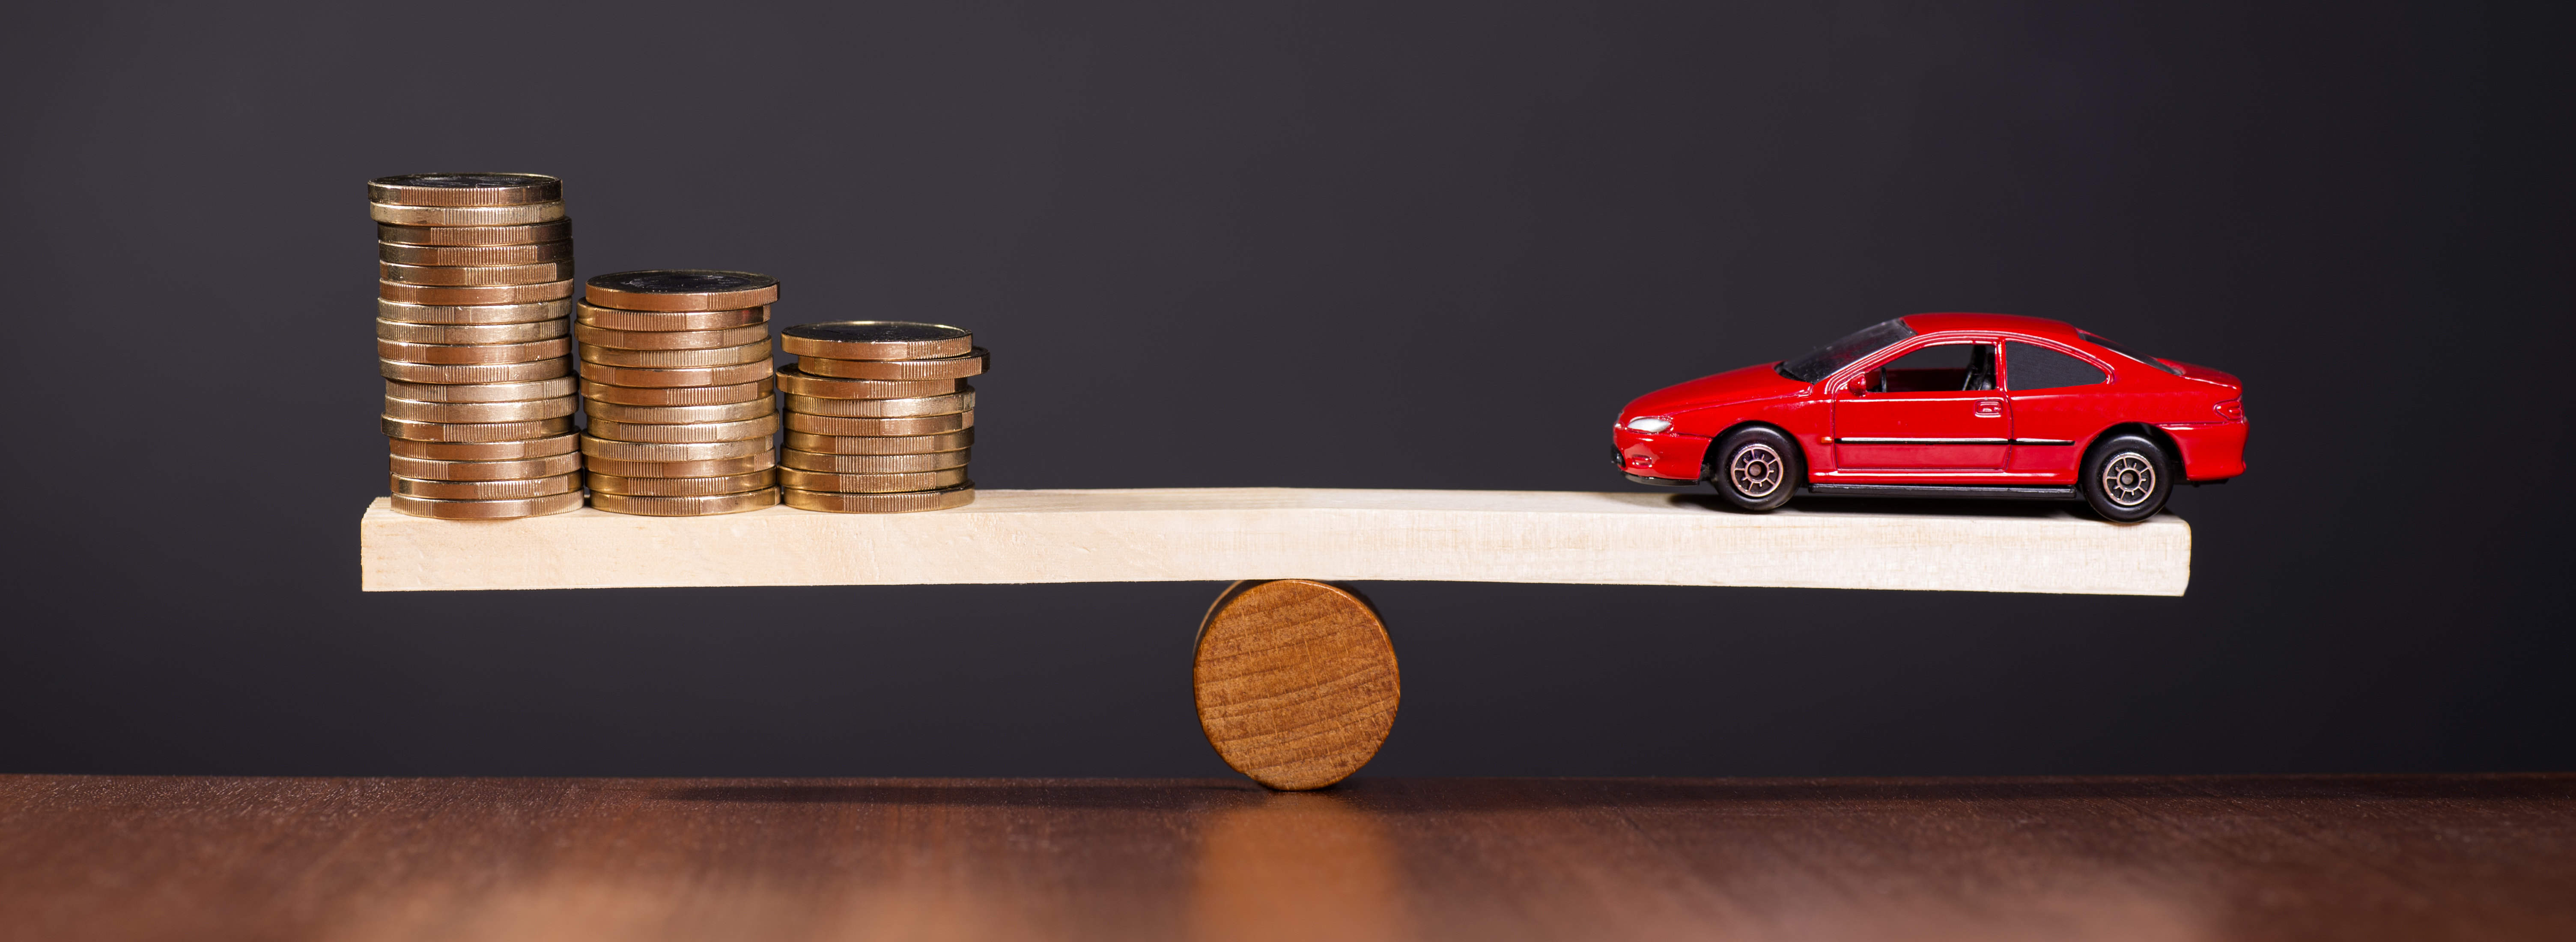 Communication on this topic: How to Assume a Car Loan, how-to-assume-a-car-loan/